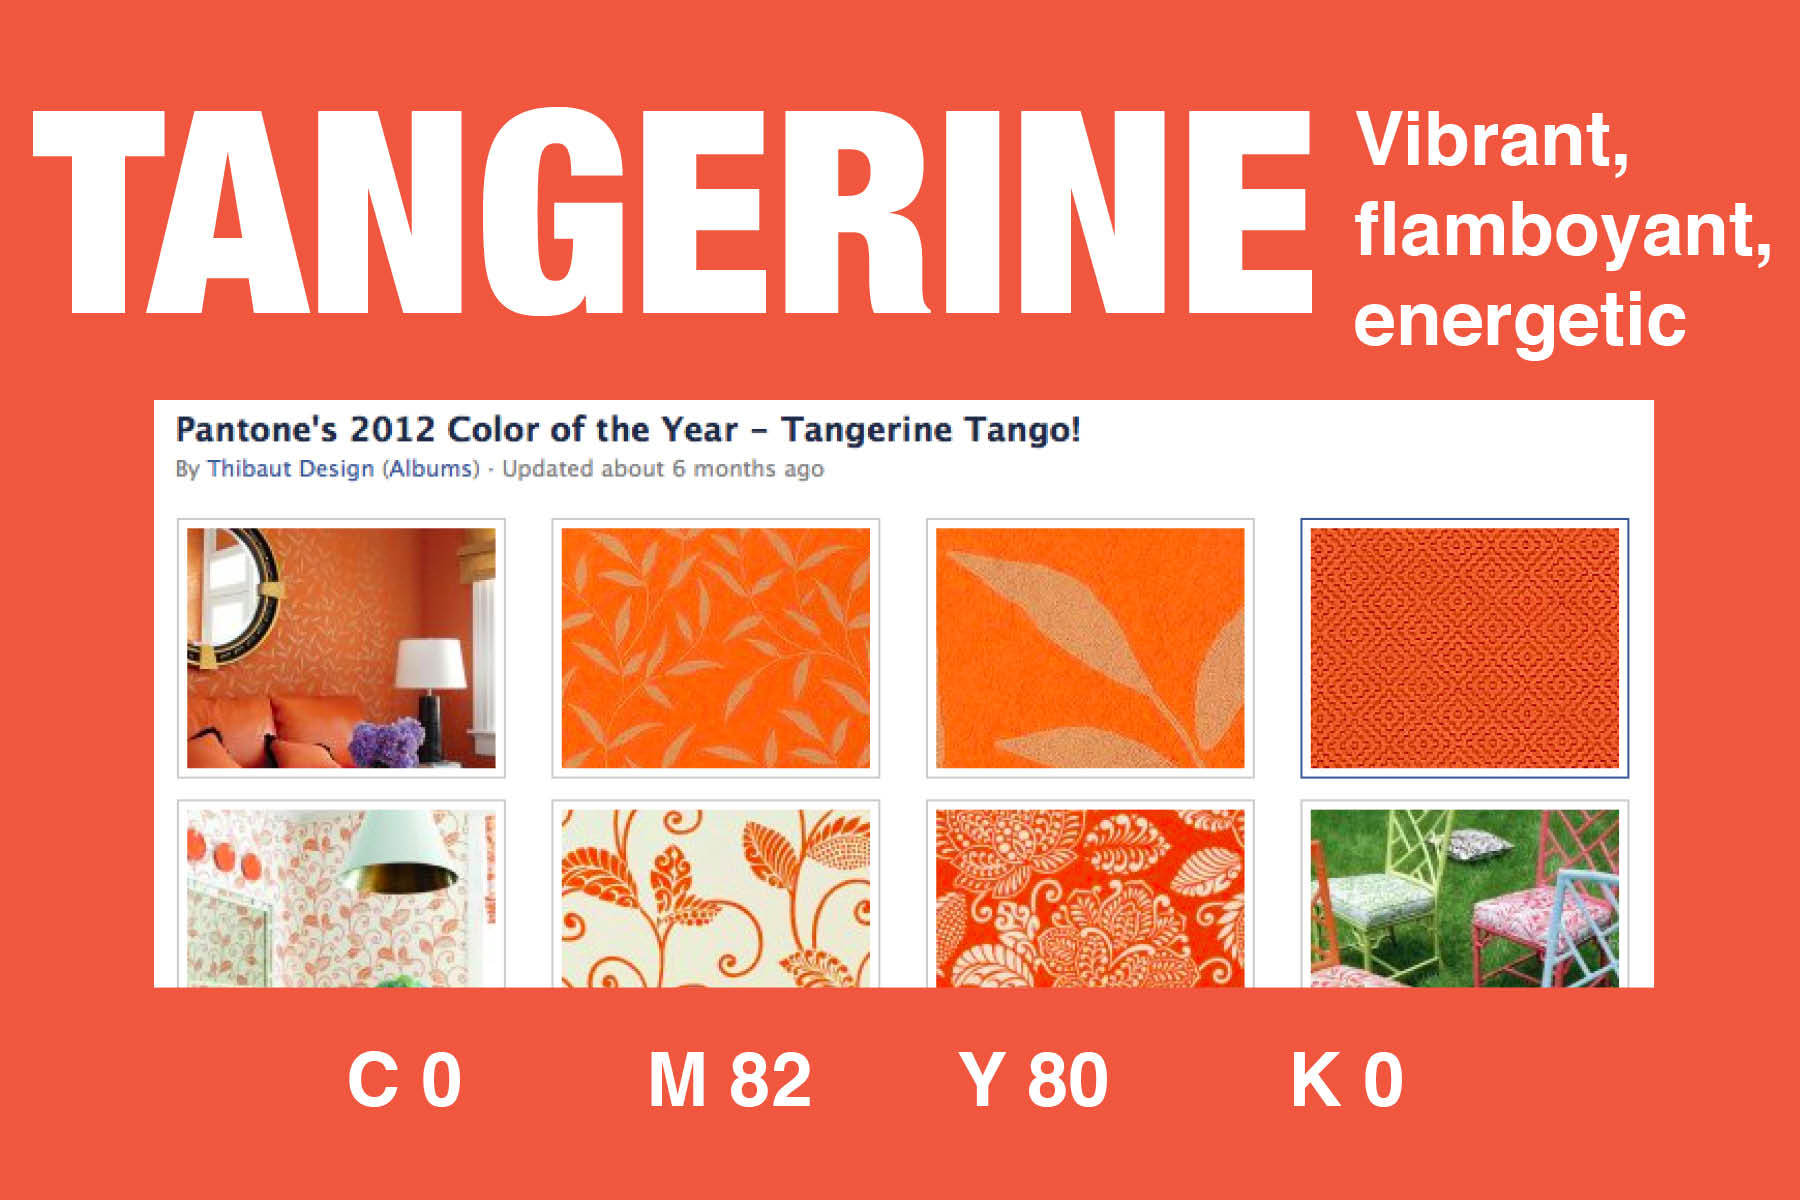 The color of the day is TANGERINE